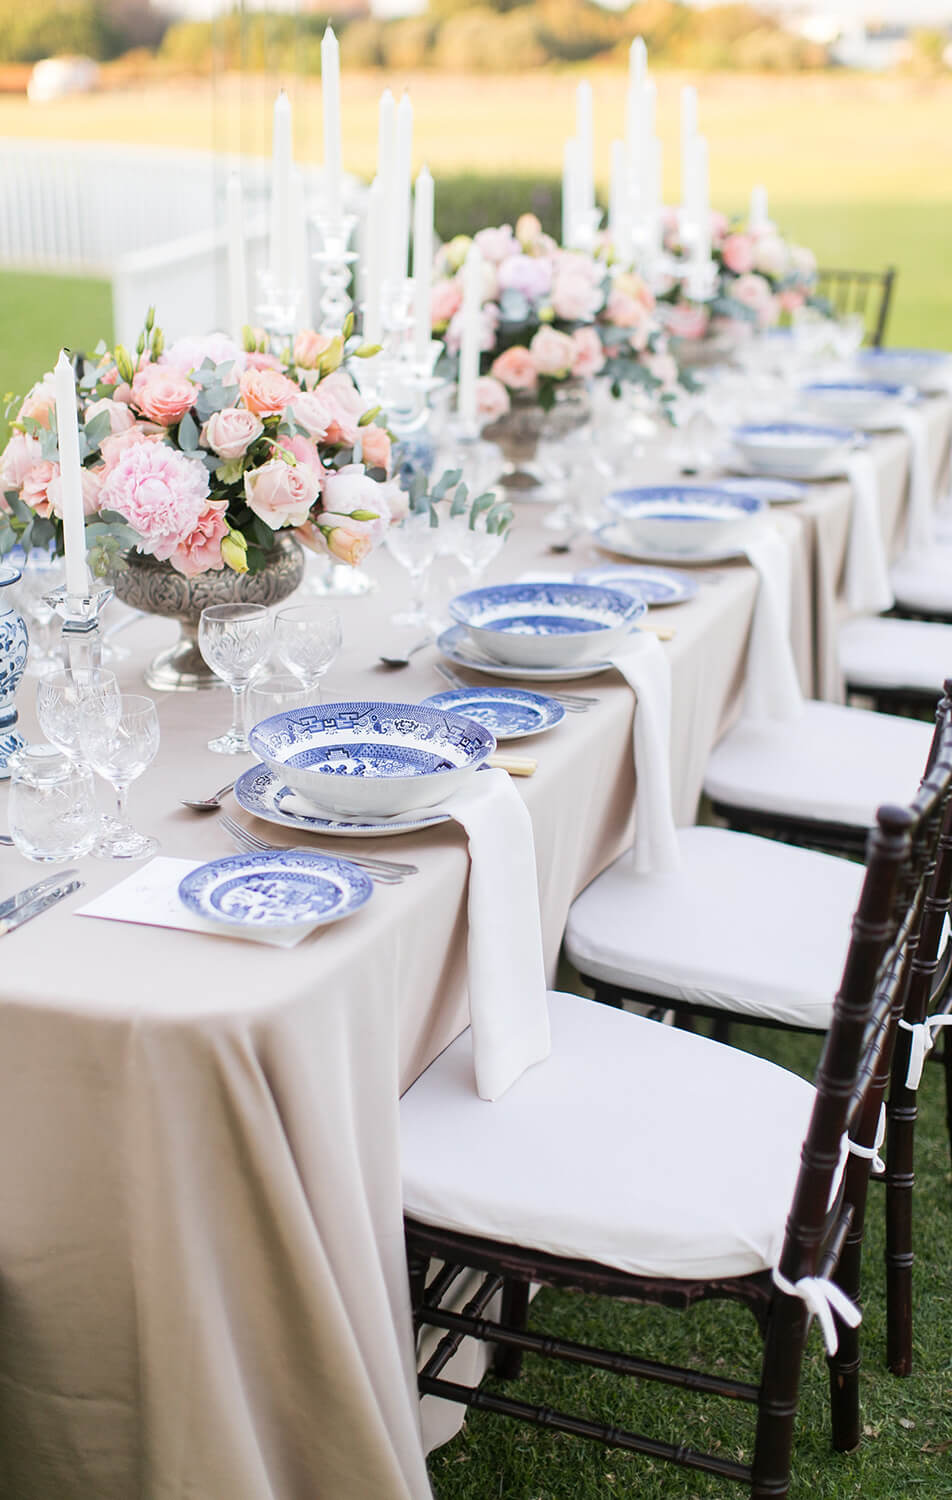 2018 Wedding Trend Showcase - By Word of Mouth